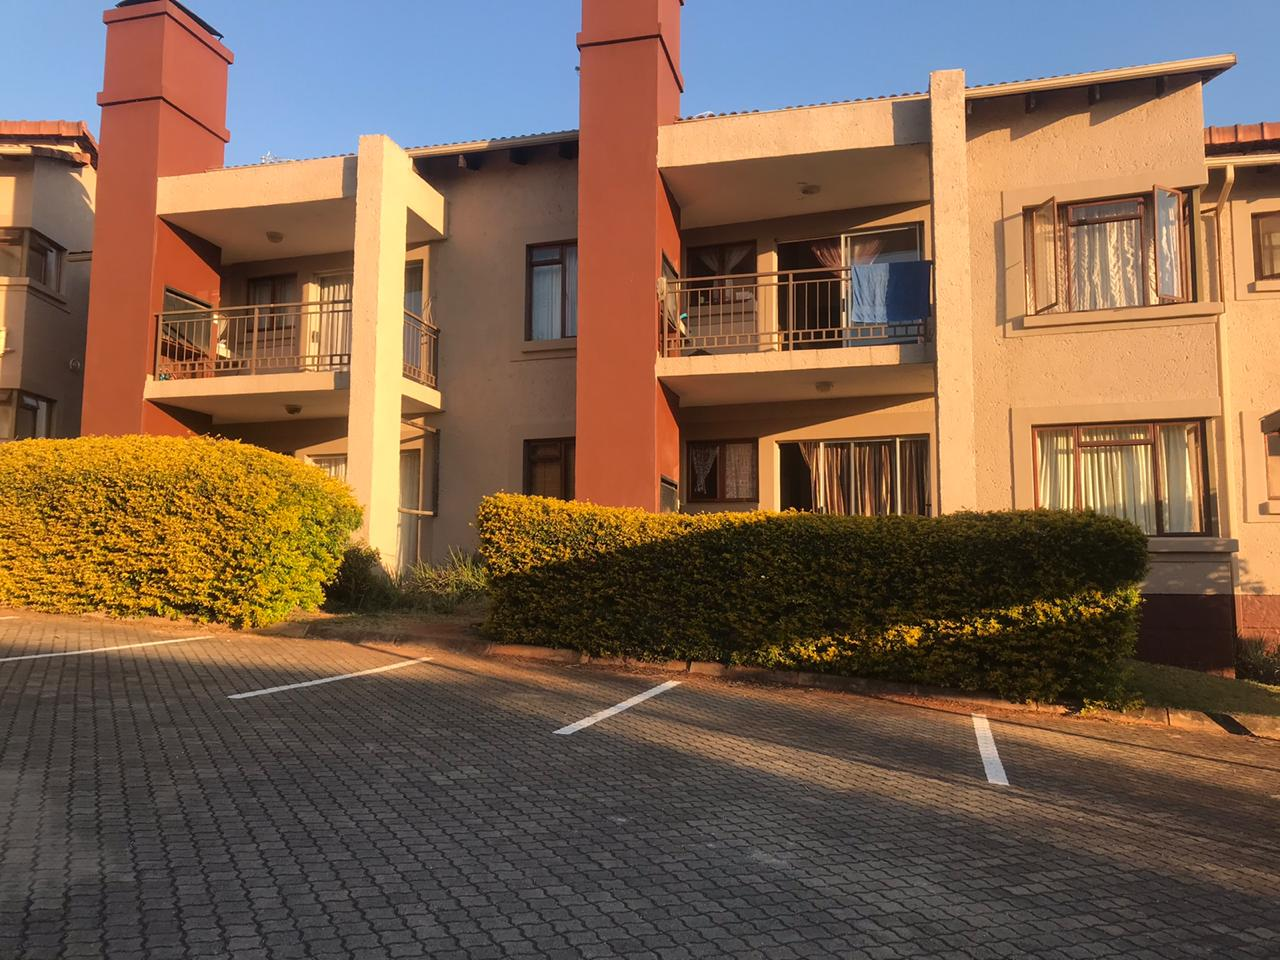 2 Bedroom Apartment For Sale in White River Ext 18  - Unit 53